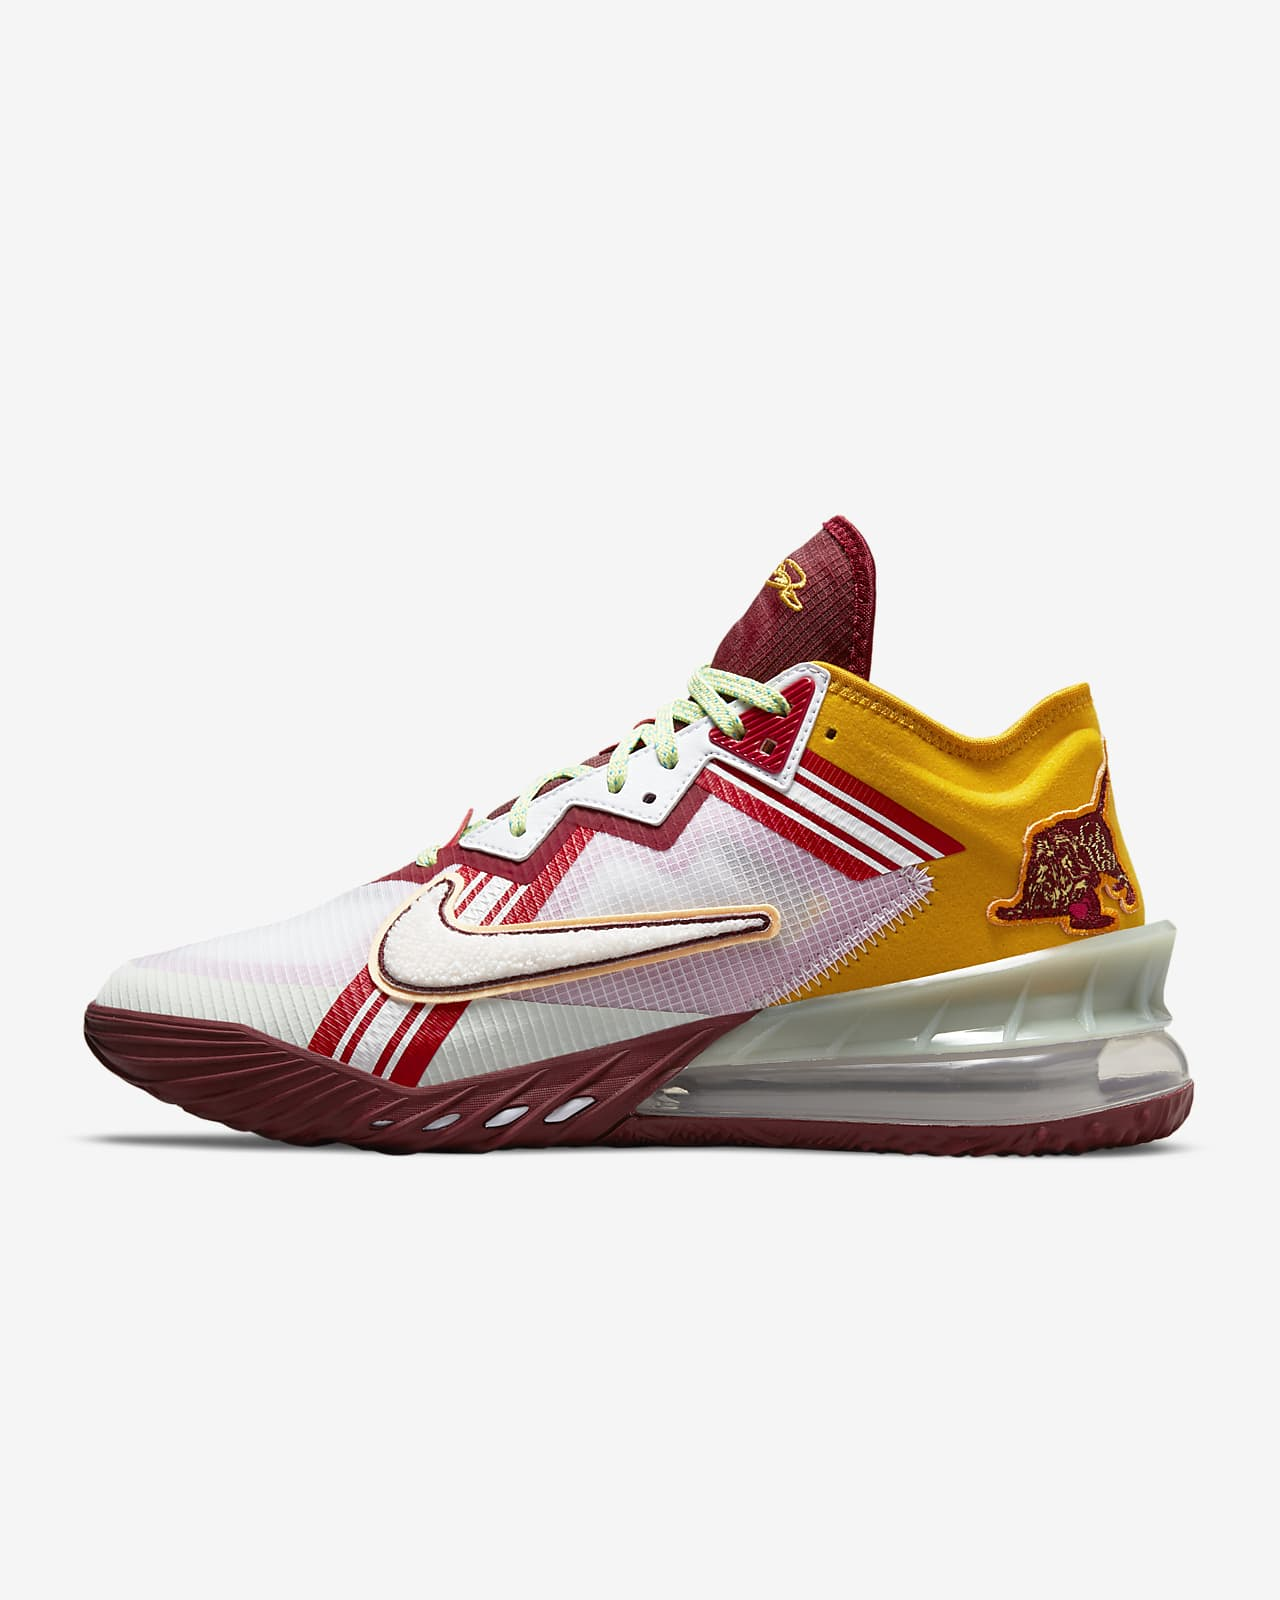 LeBron 18 Low x Mimi Plange 'Higher Learning' Basketball Shoes